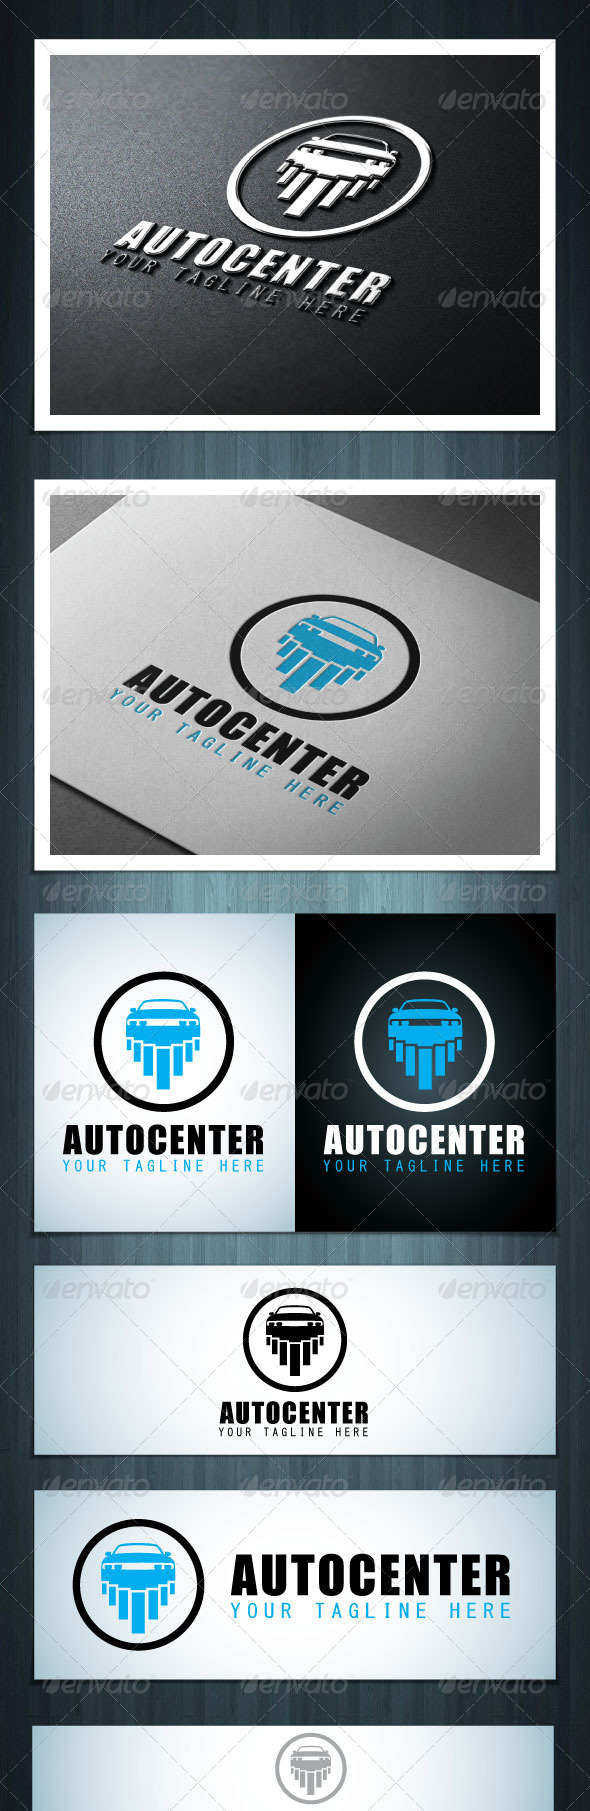 Autocenter - Vector Abstract